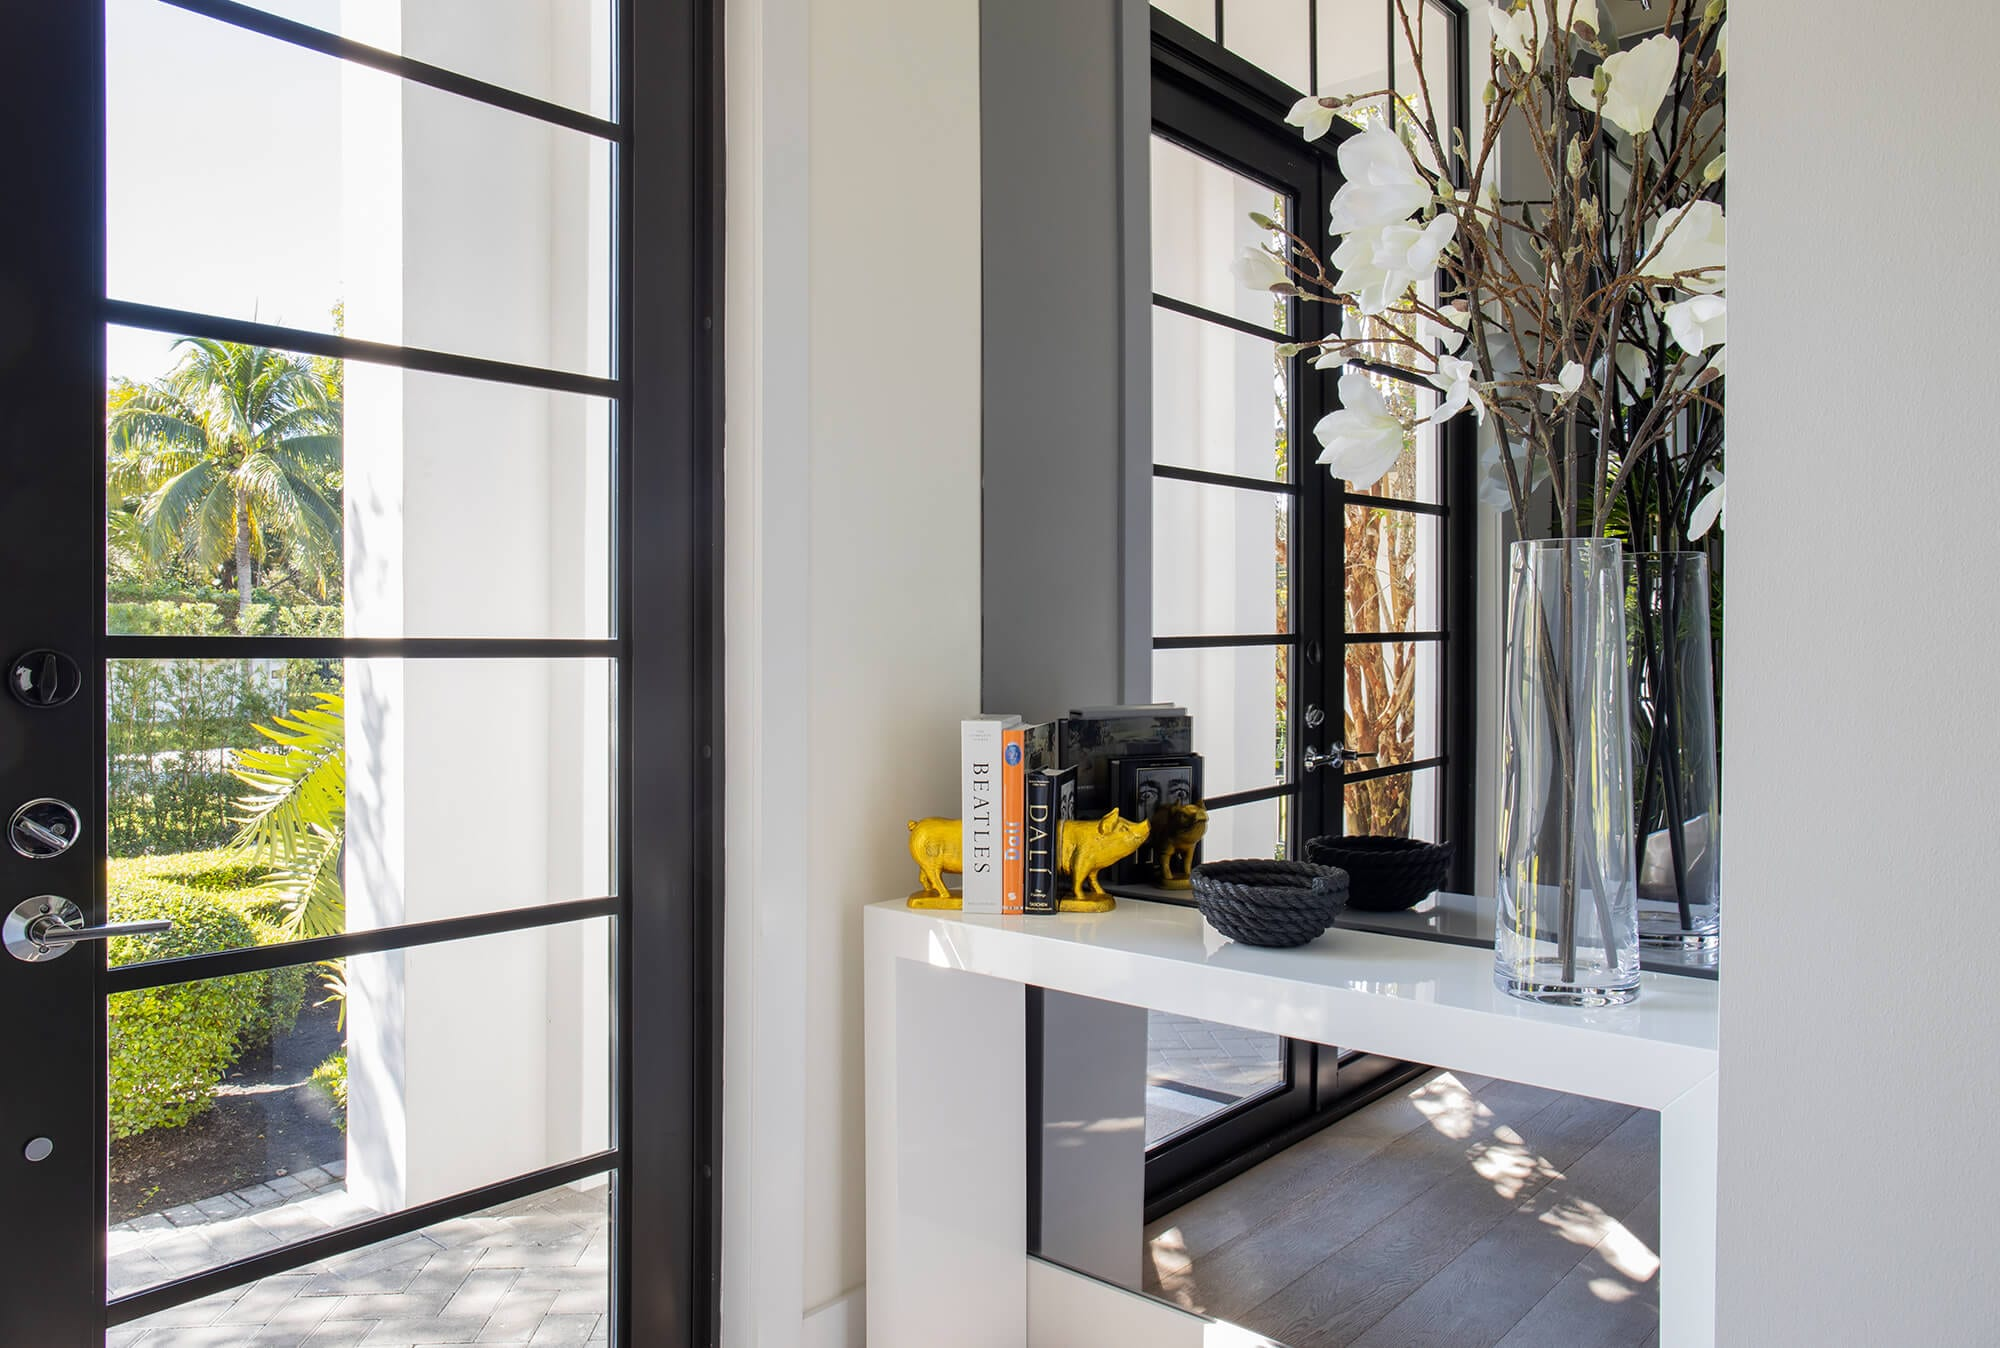 Interiors by Maite Granda - Coral Gables Eclectic - Dining Room